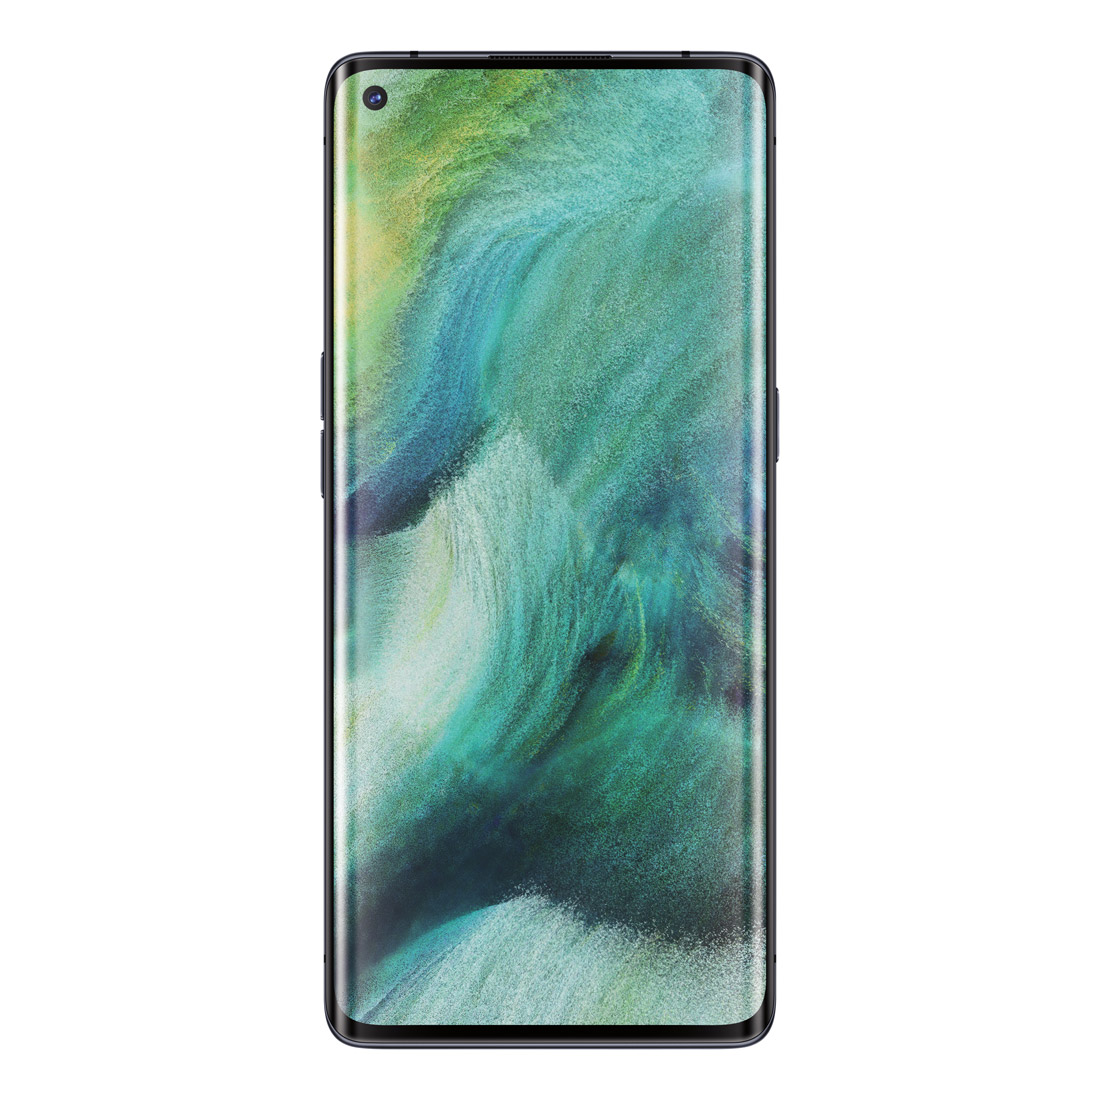 "Oppo Find X2 Neo 5G (6.55"" 90Hz, 48MP Quad Camera, 256GB/8GB) - Moonlight Black"